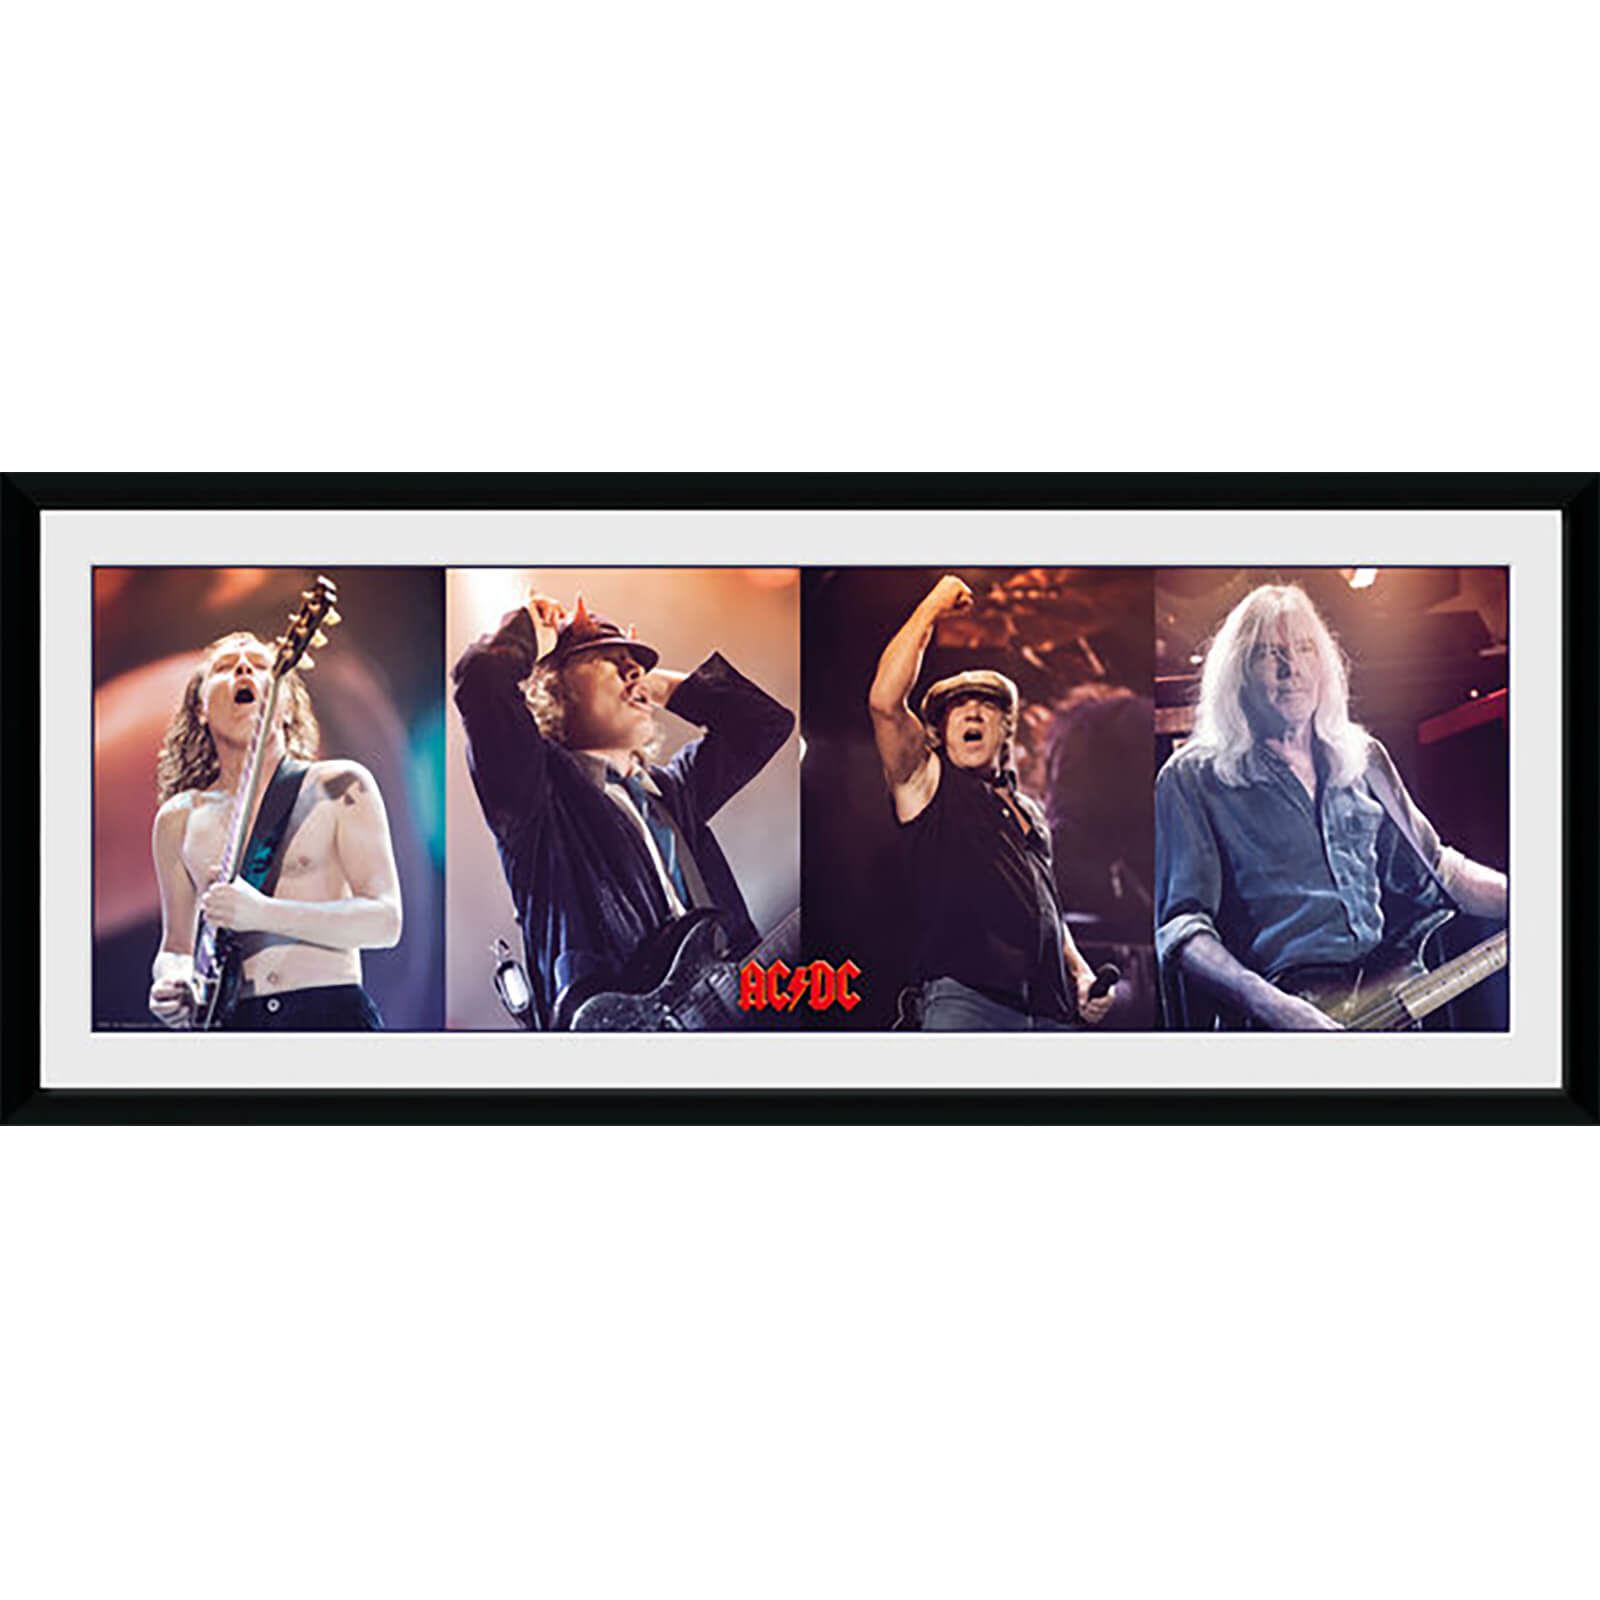 AC/DC Band - 30 x 12 Inches Framed Photograph